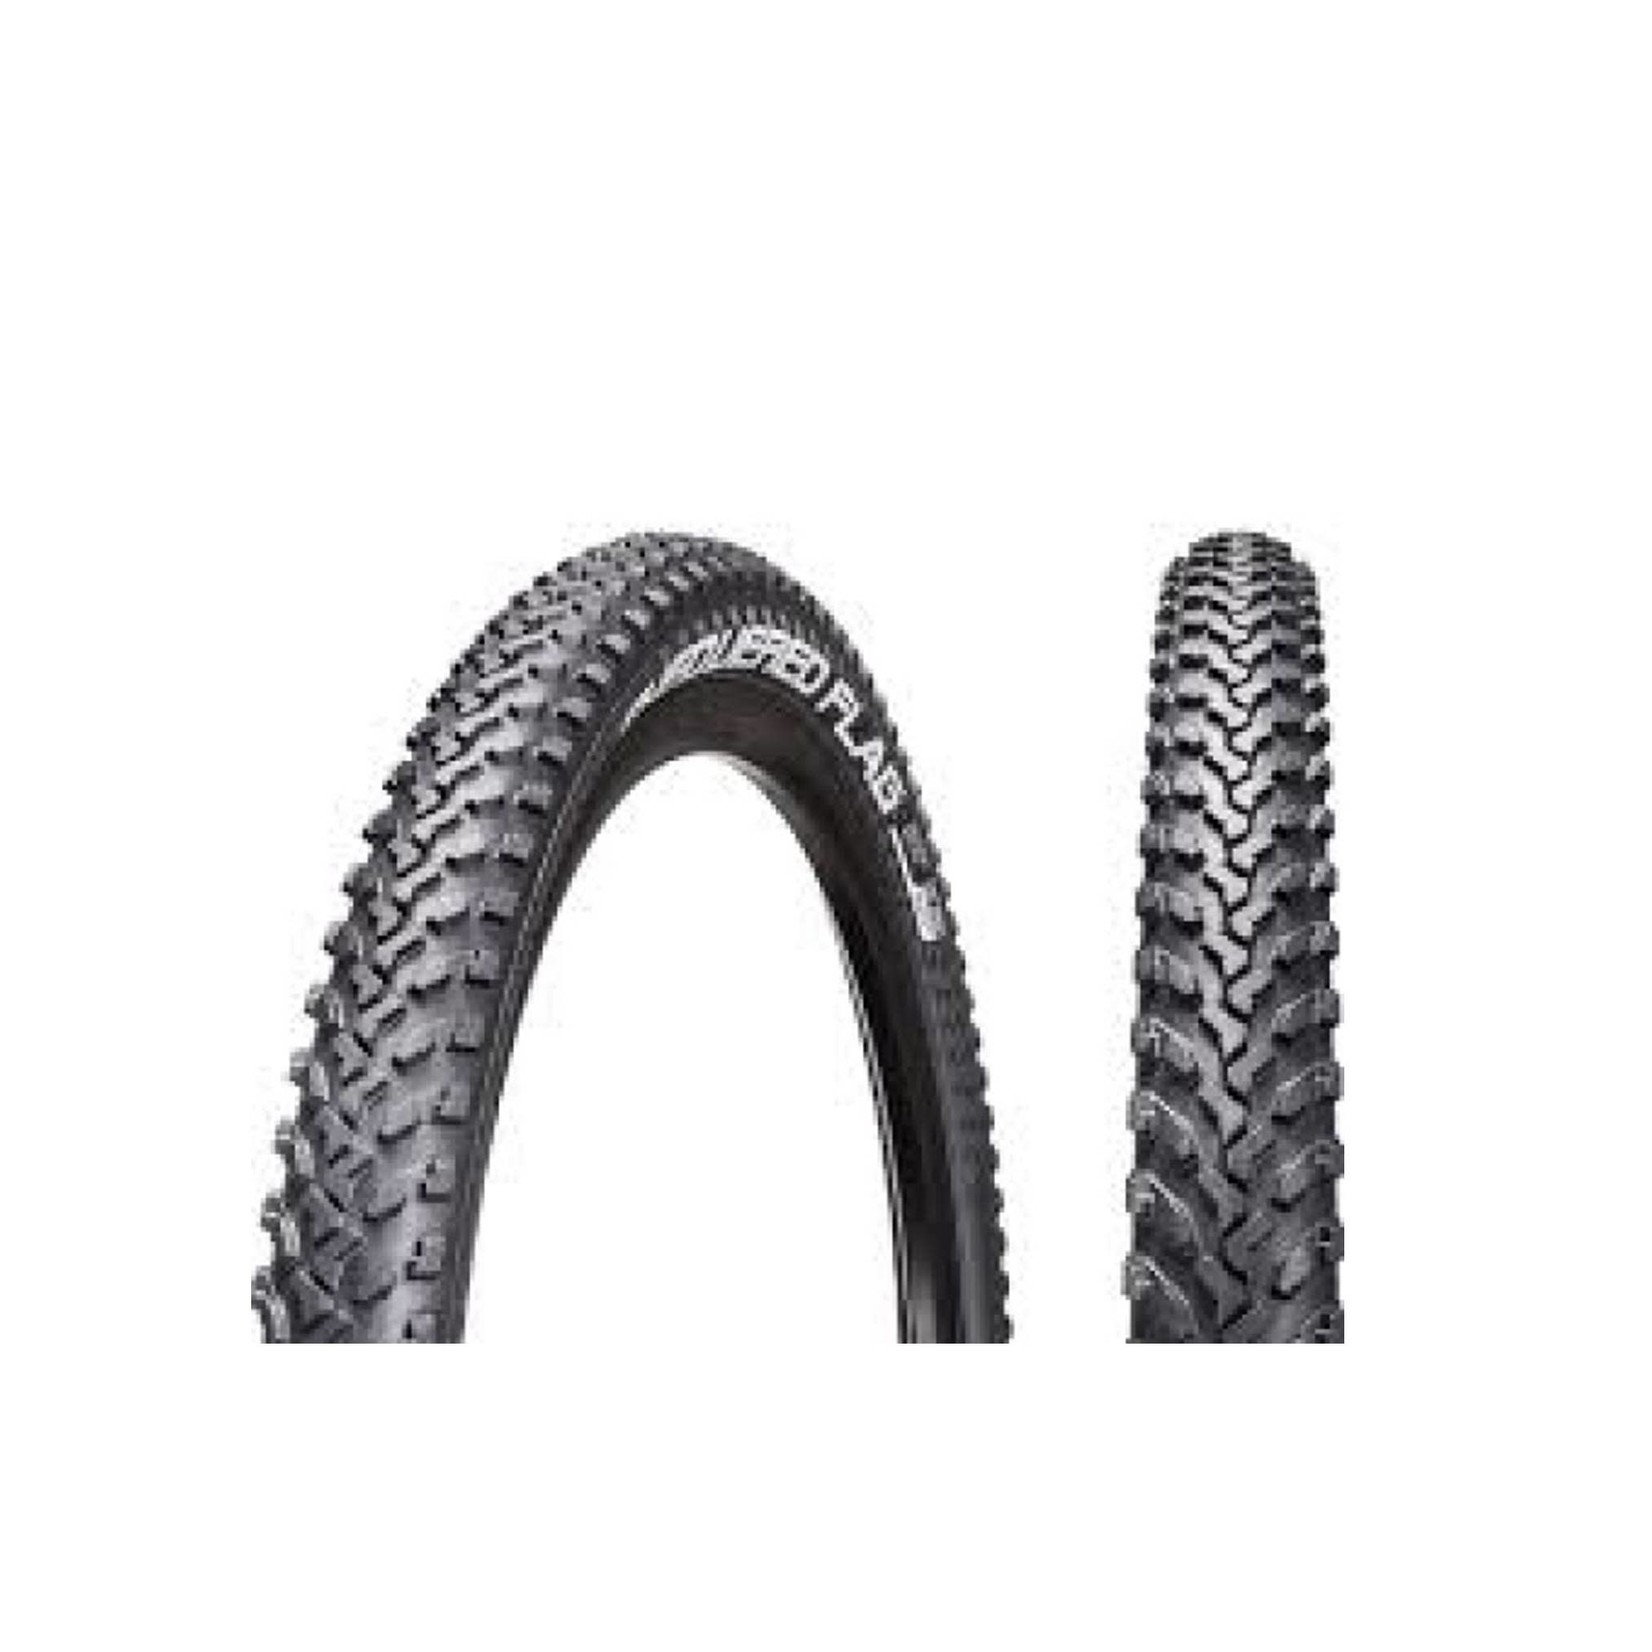 Chaoyang 24 X 1.95 Knobbly Tyre